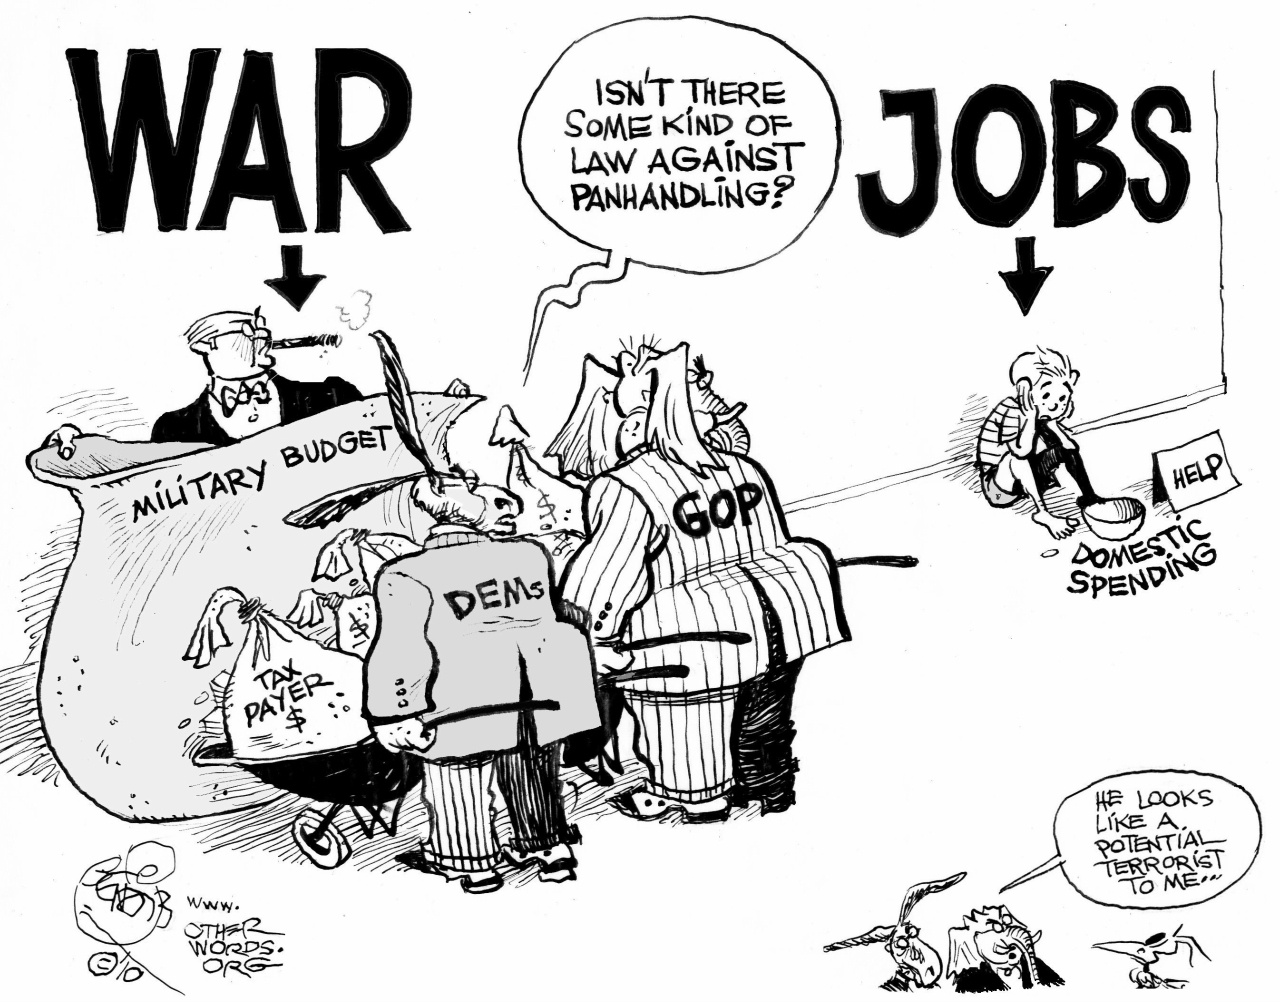 money for war money for jobs